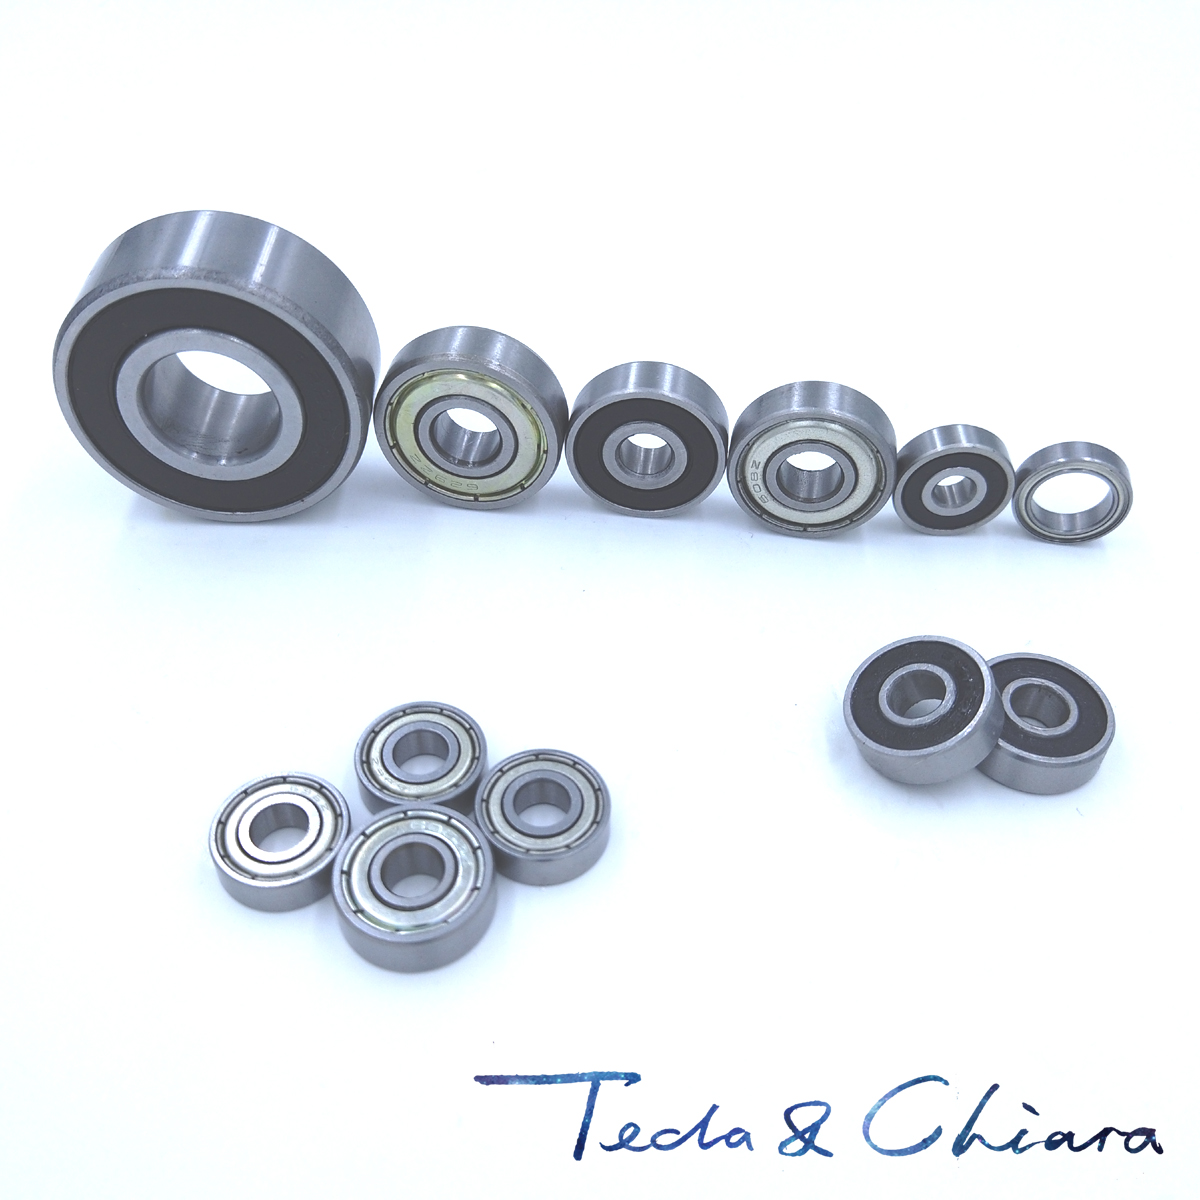 634 634ZZ 634RS 634-2Z 634Z 634-2RS ZZ RS RZ 2RZ Deep Groove Ball Bearings 4 X 16 X 5mm